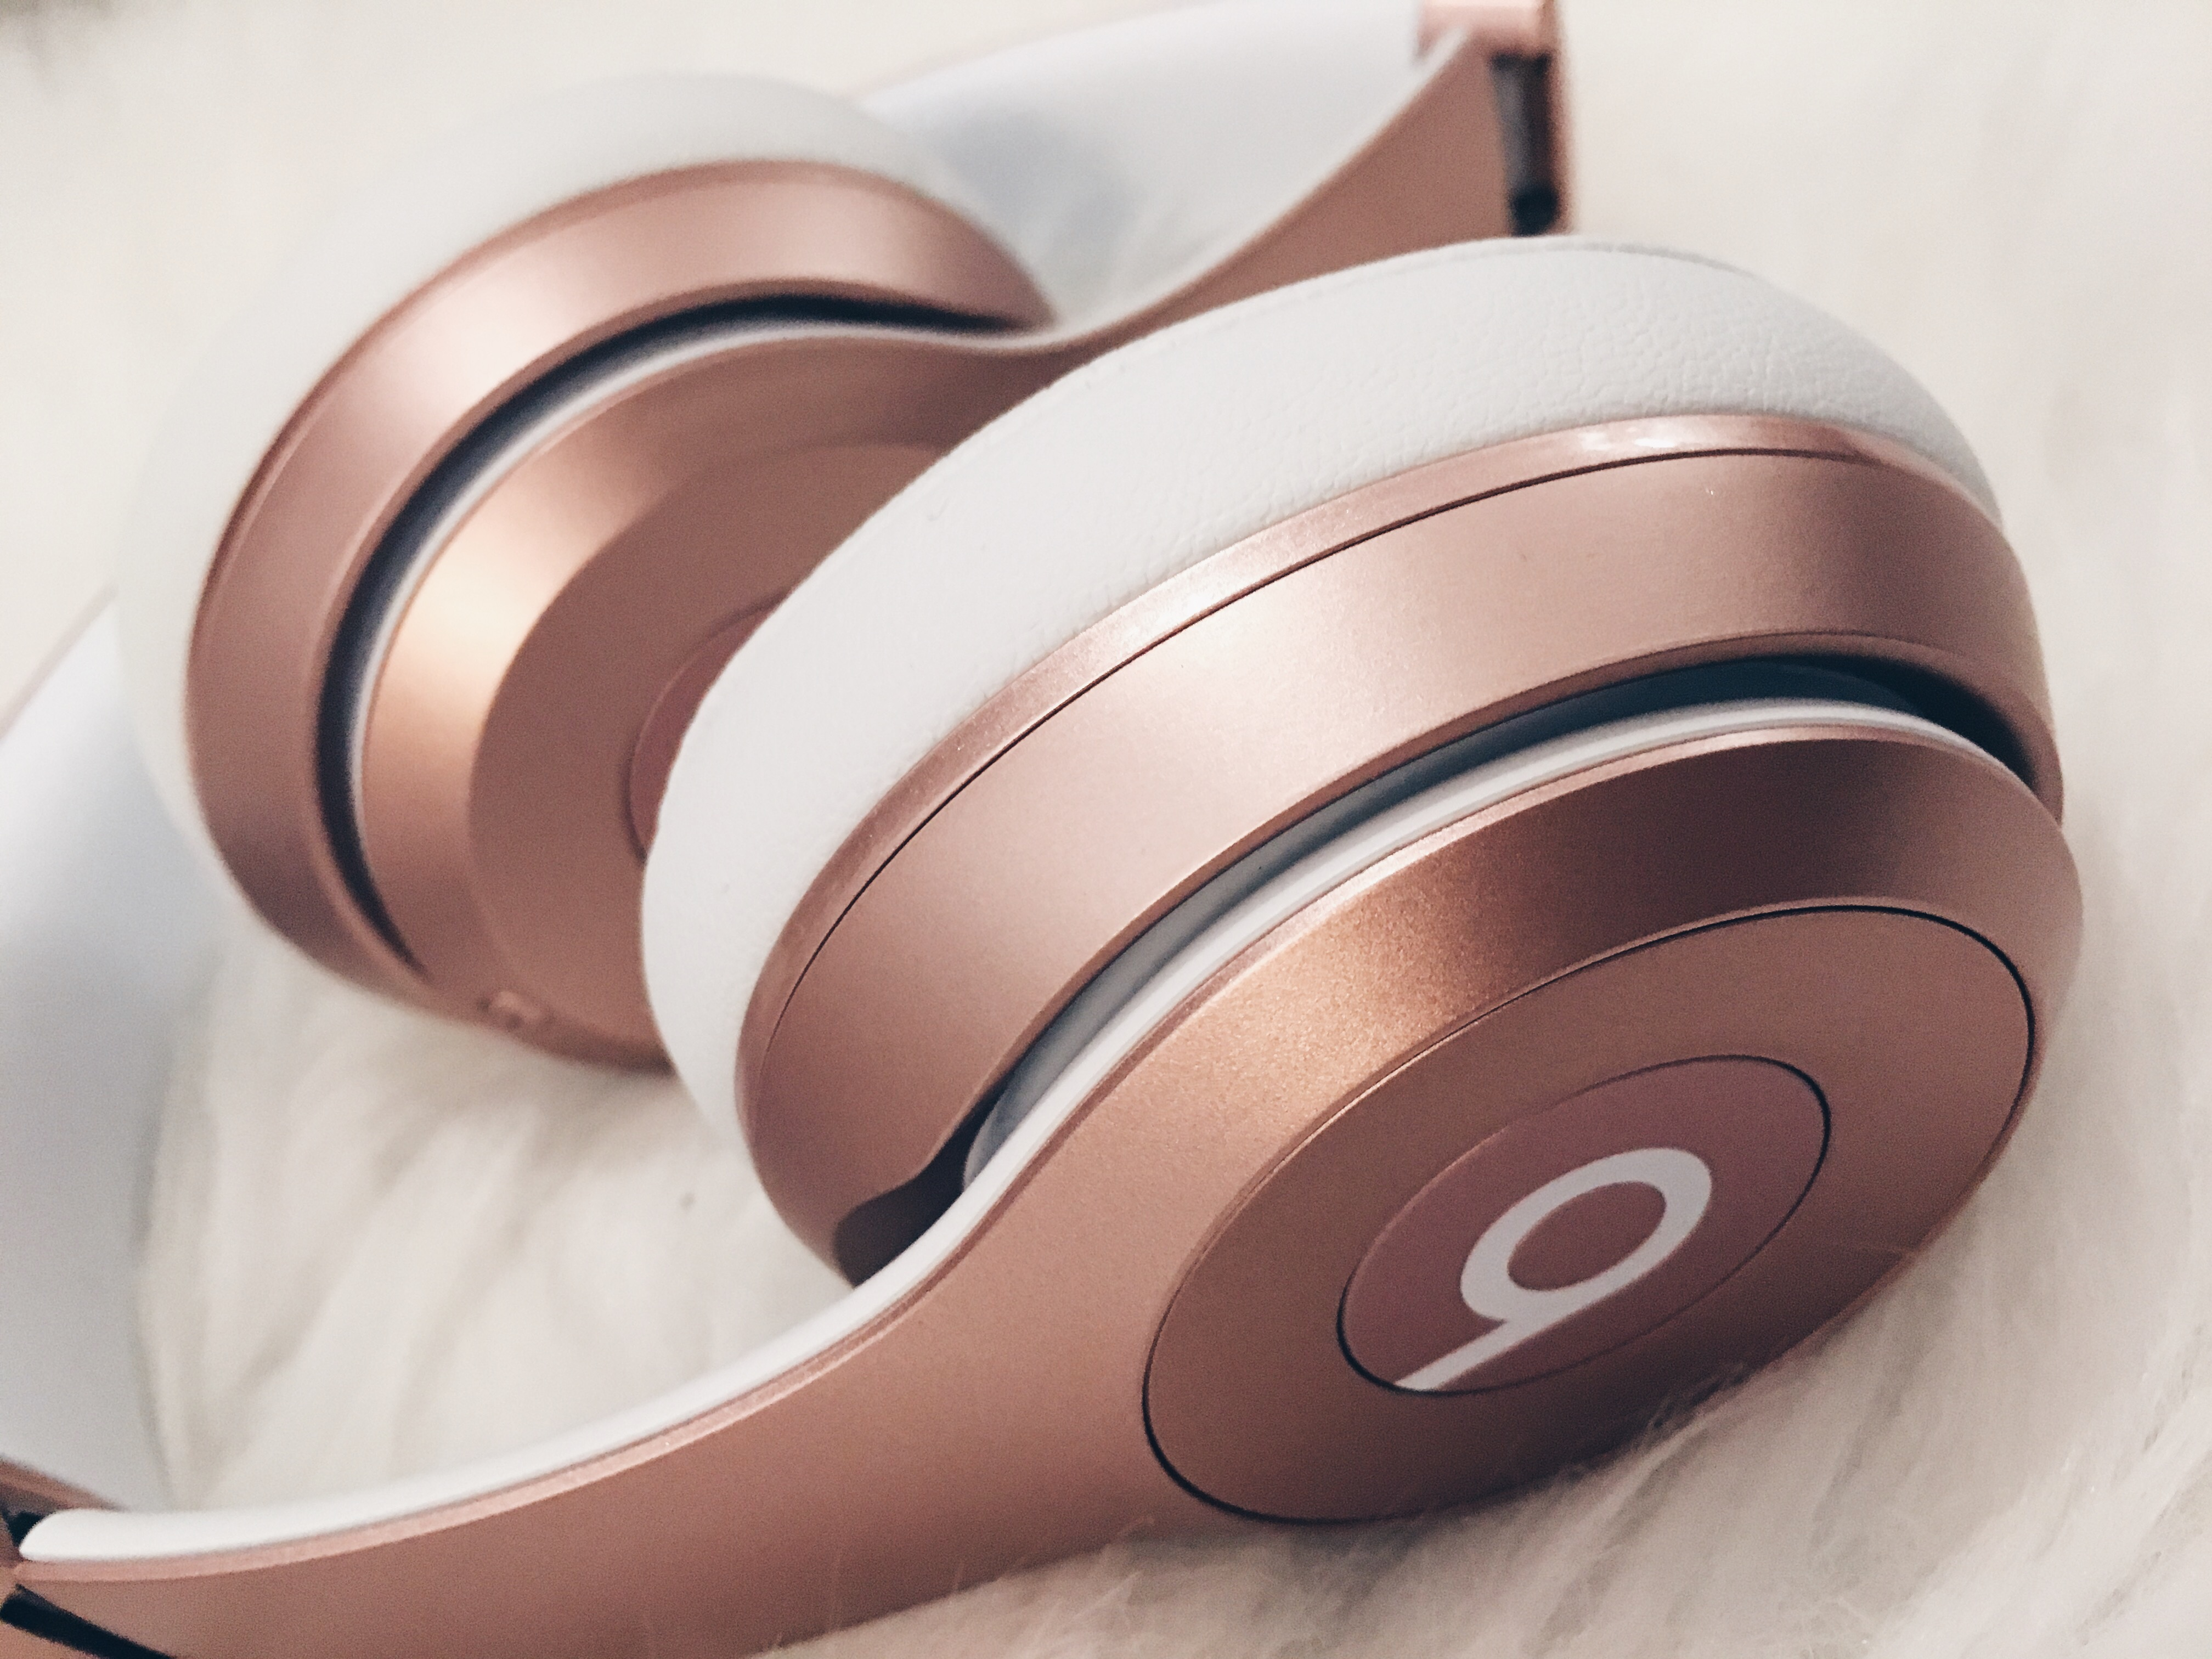 Image shows Beats by Dre Rose Gold